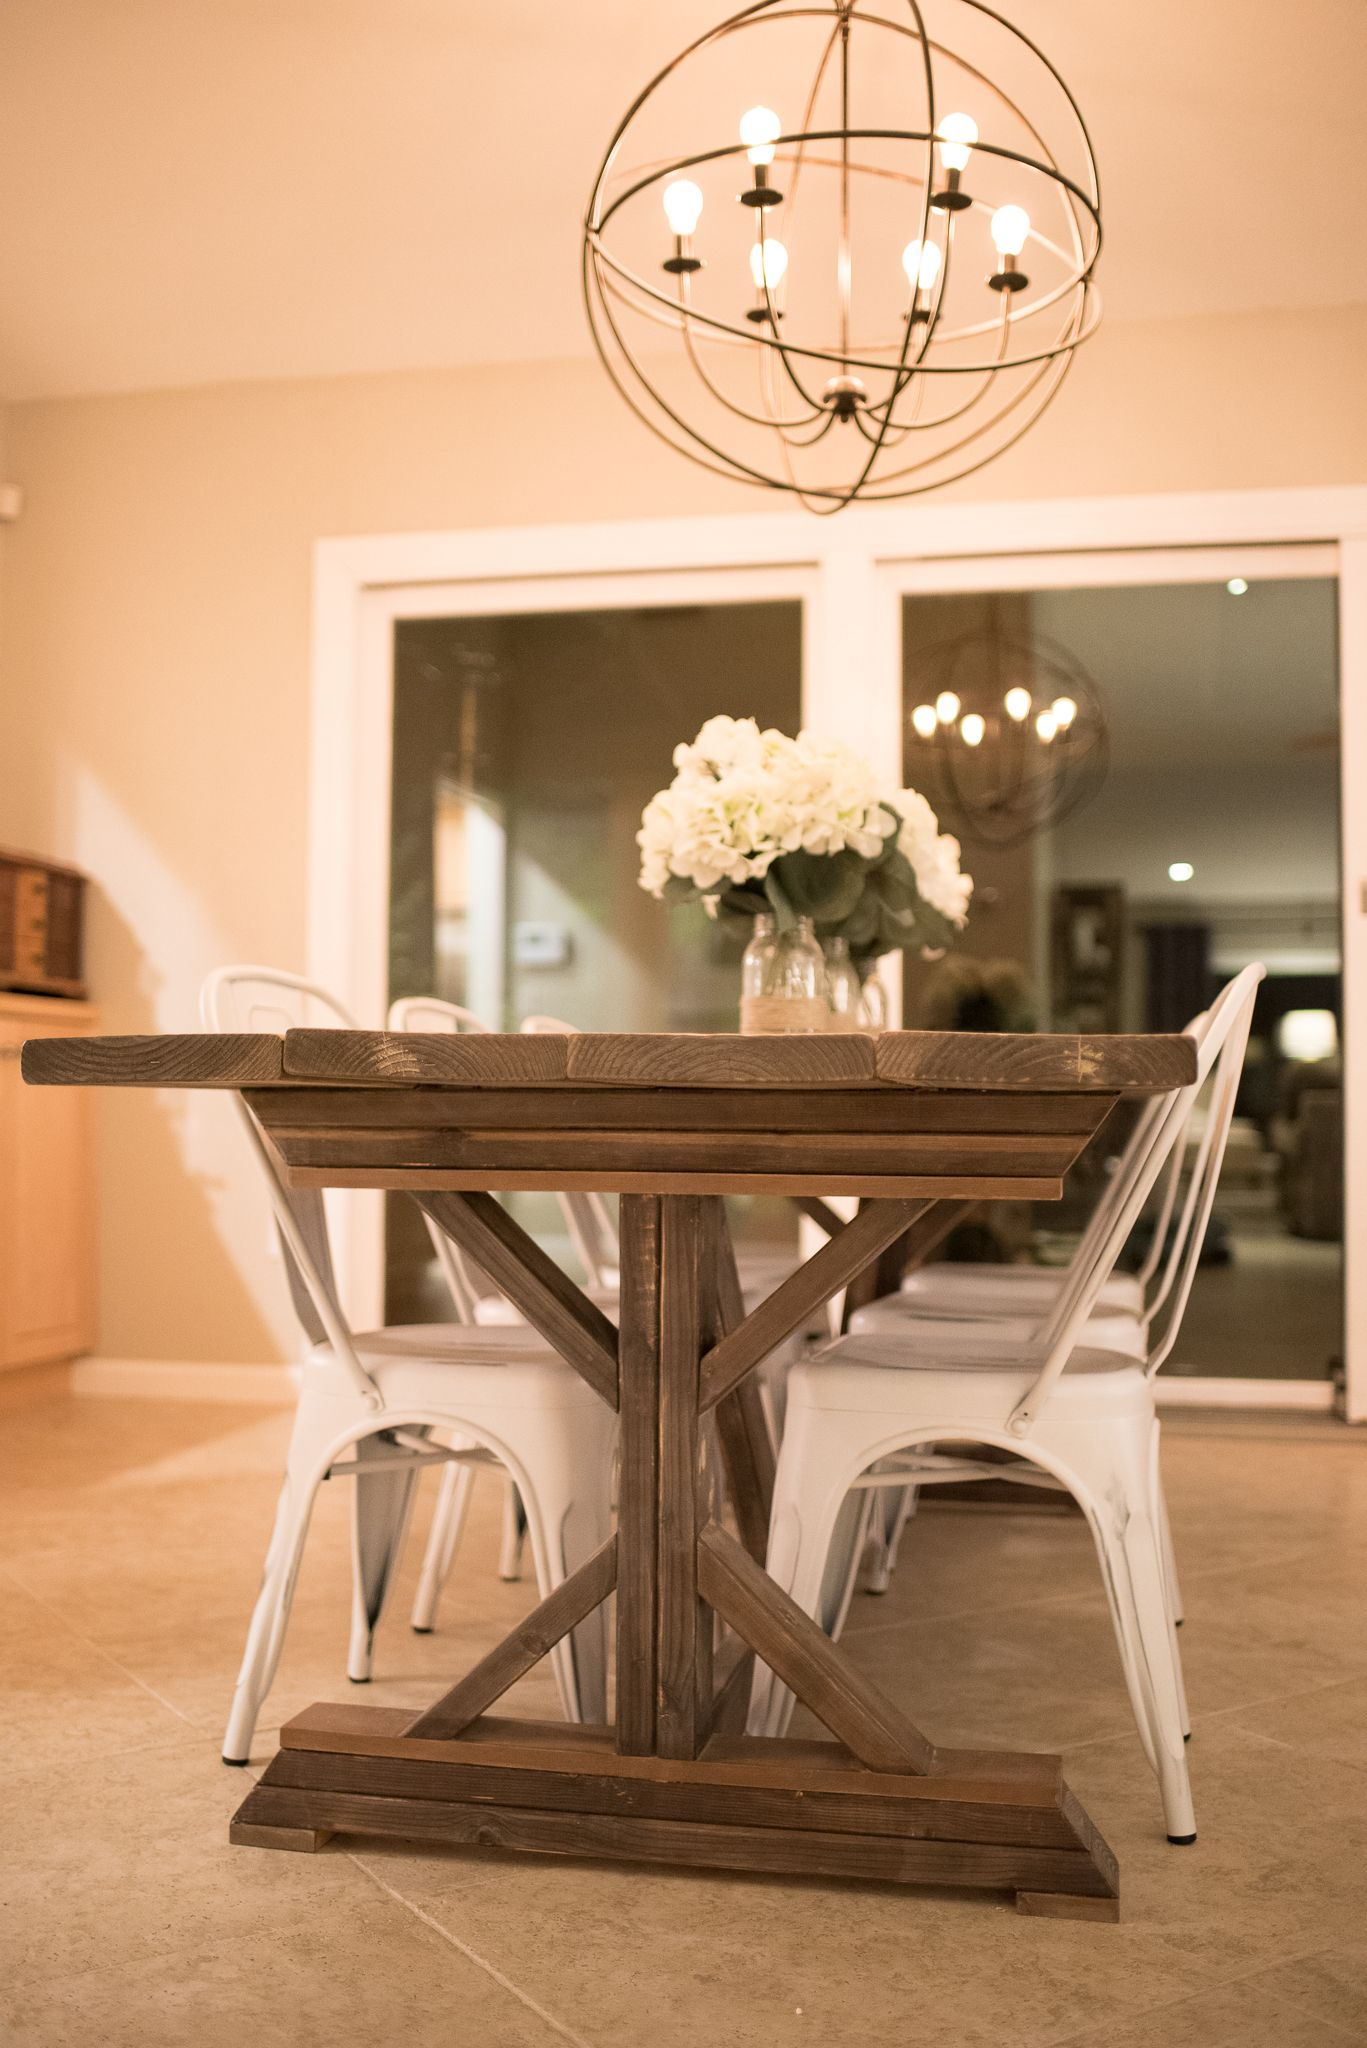 Pin by Bryant b on Chaderlirs Ana white, Farmhouse table